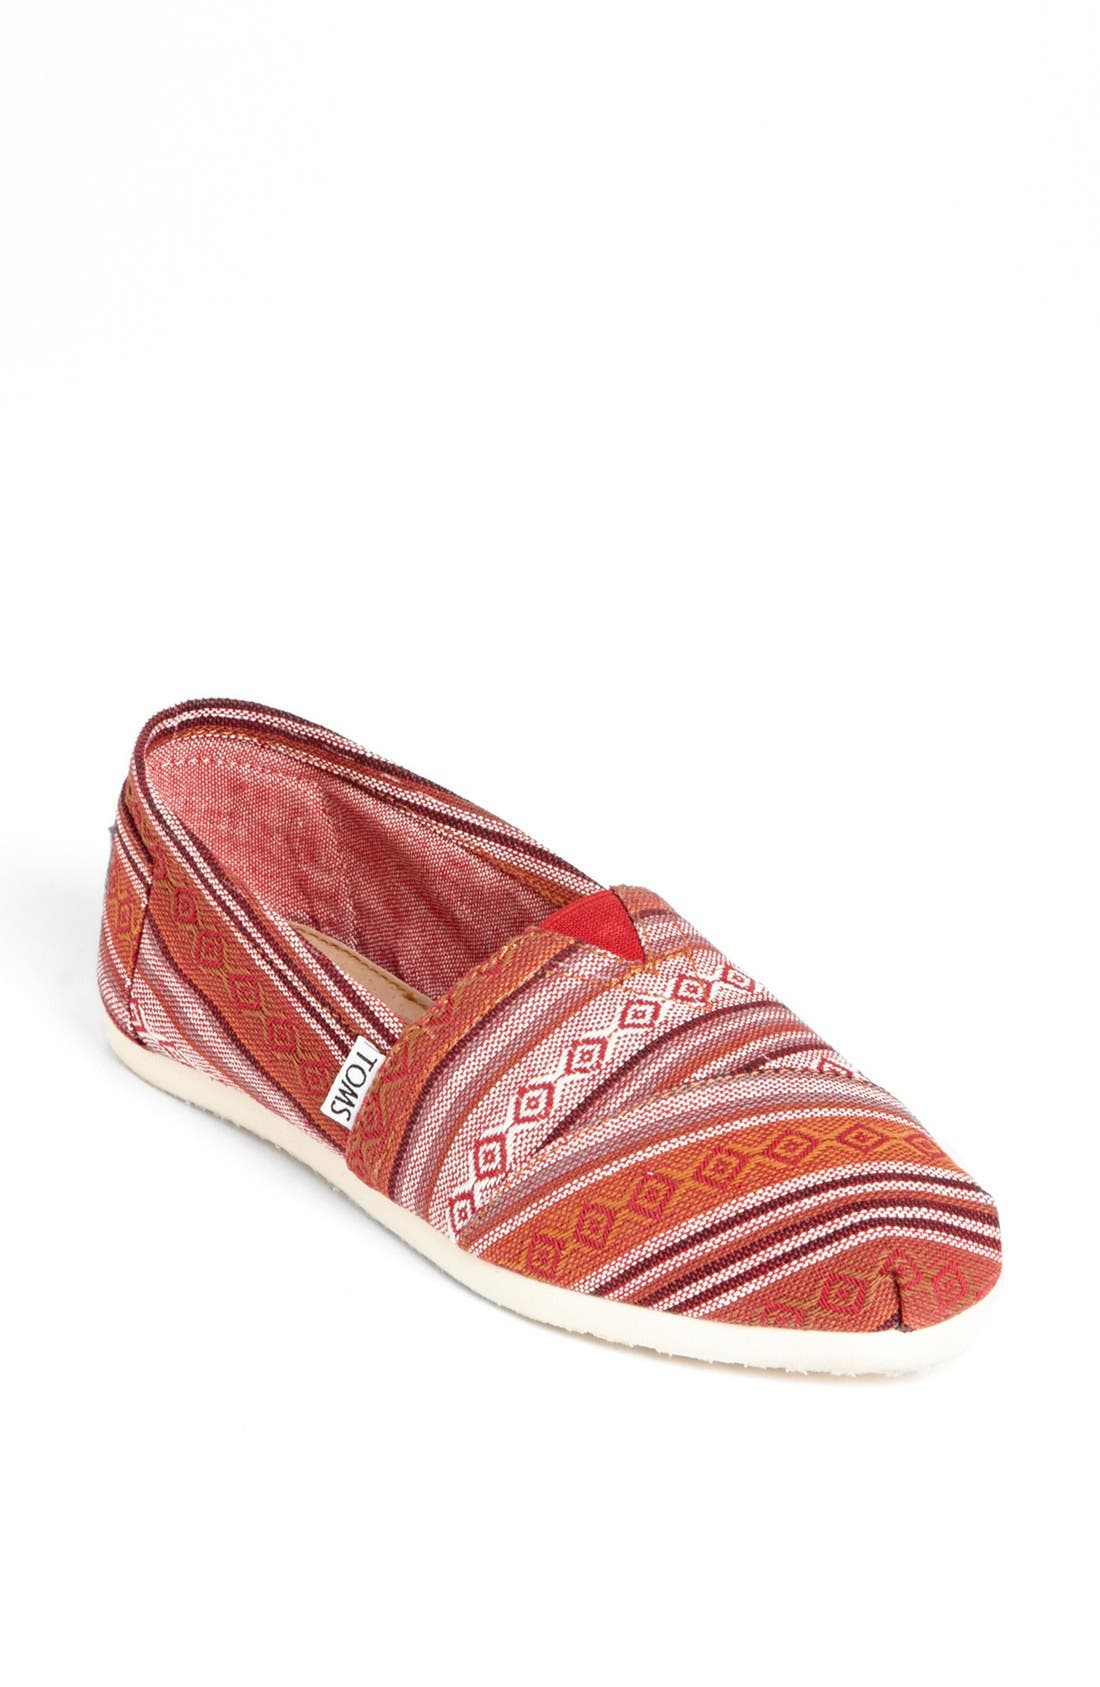 Alternate Image 1 Selected - TOMS 'Seasonal Classic - Nepal' Slip-On (Women)